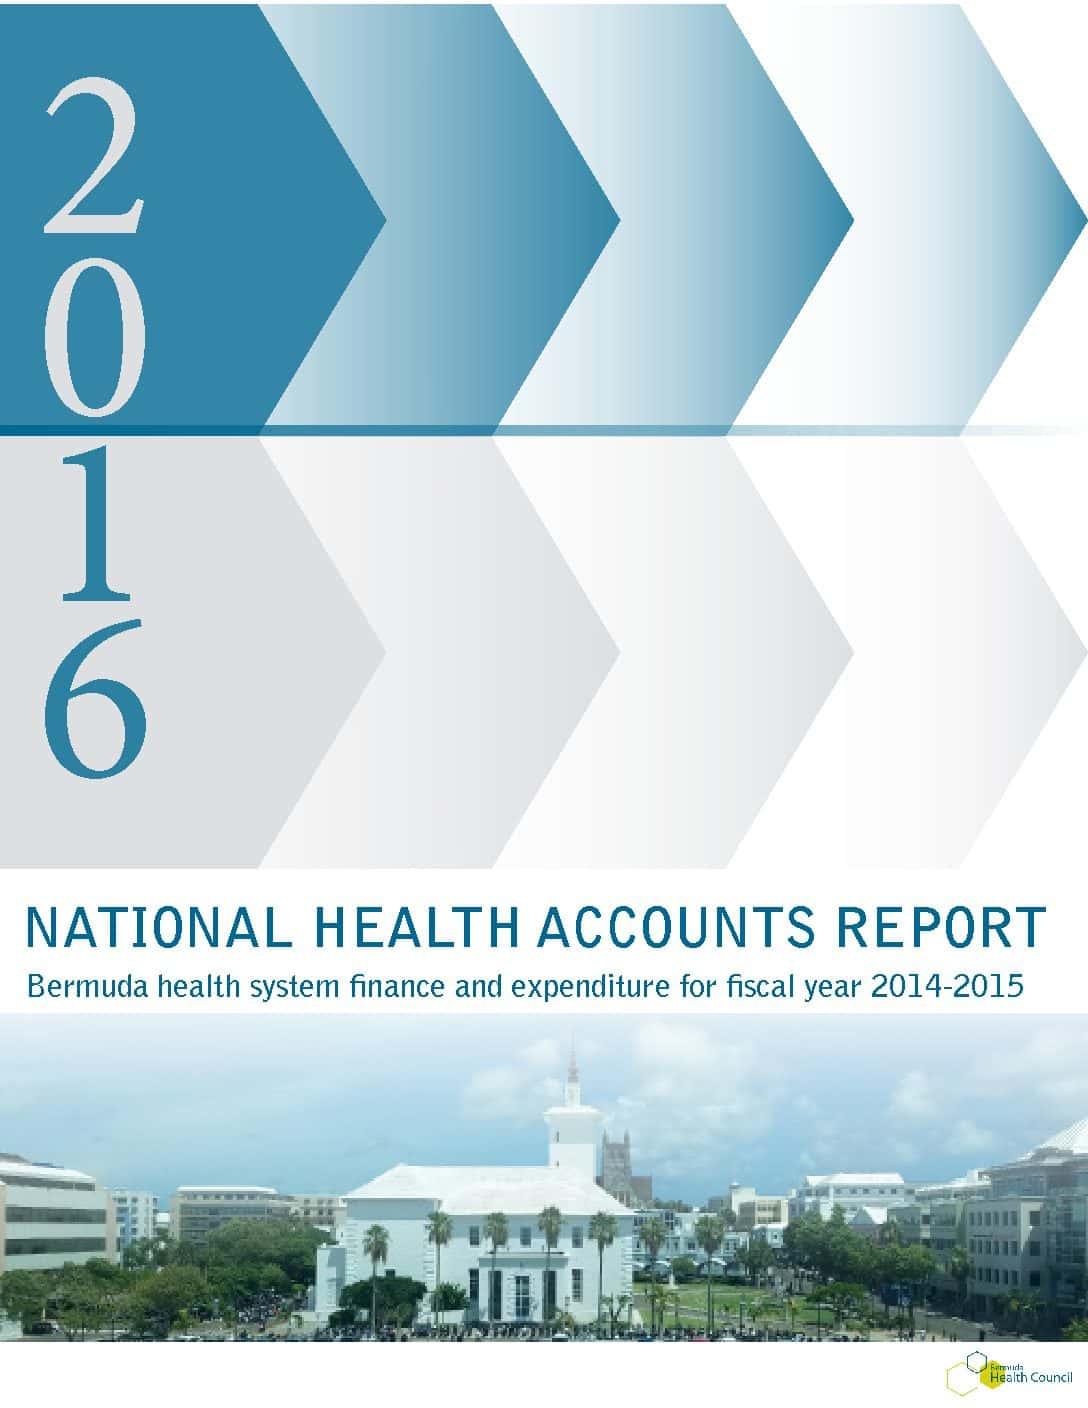 2016 National Health Accounts